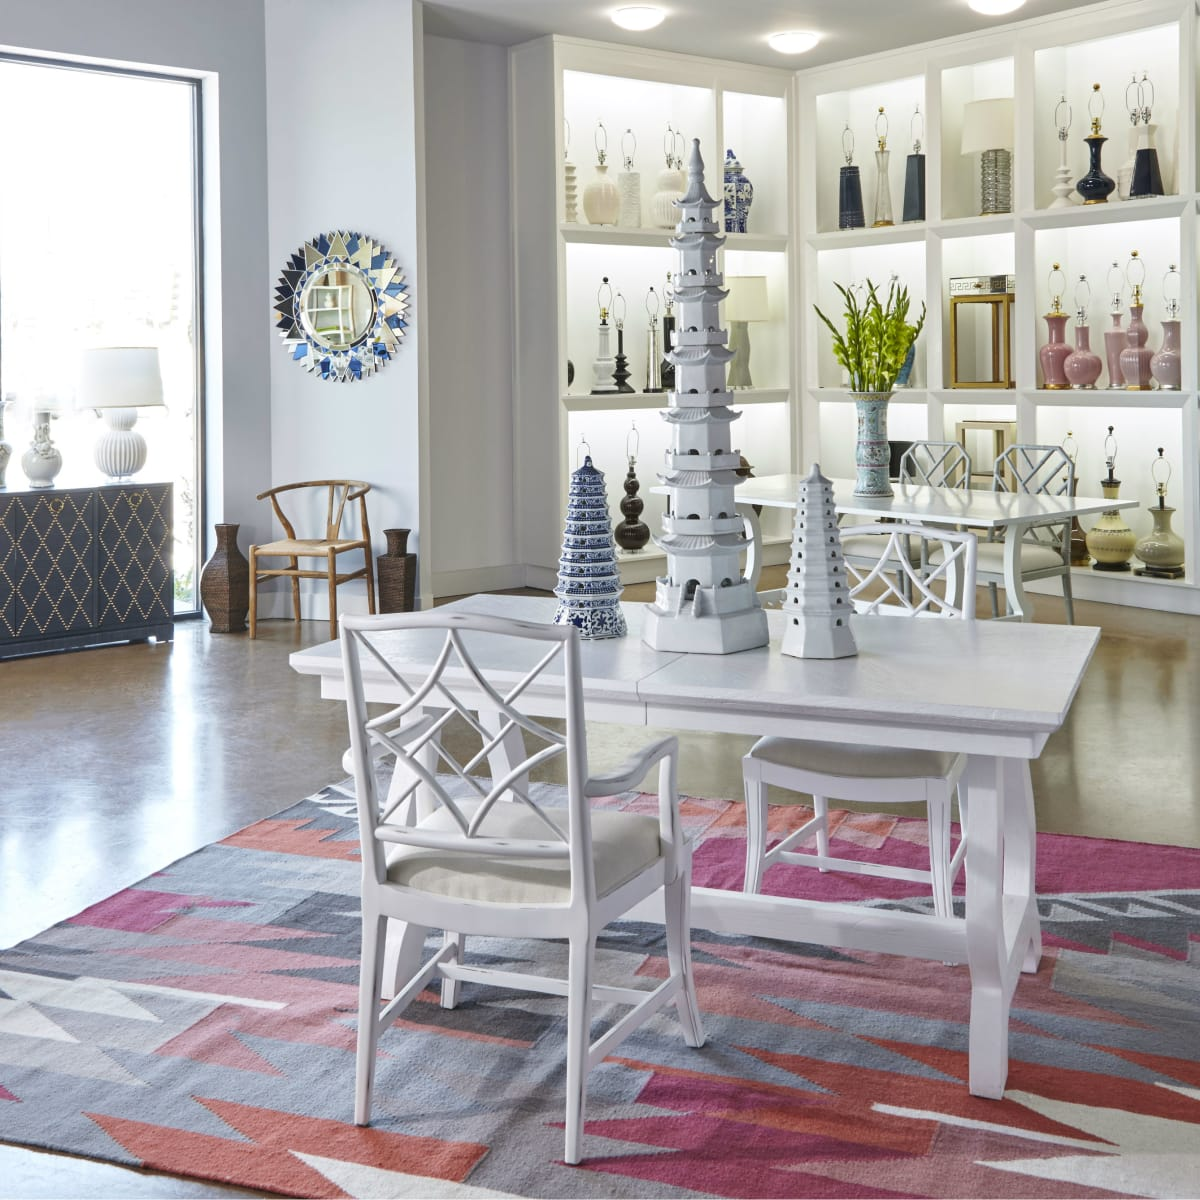 Bungalow Furniture Store: New York Furniture Brand Picks Dallas Design District For